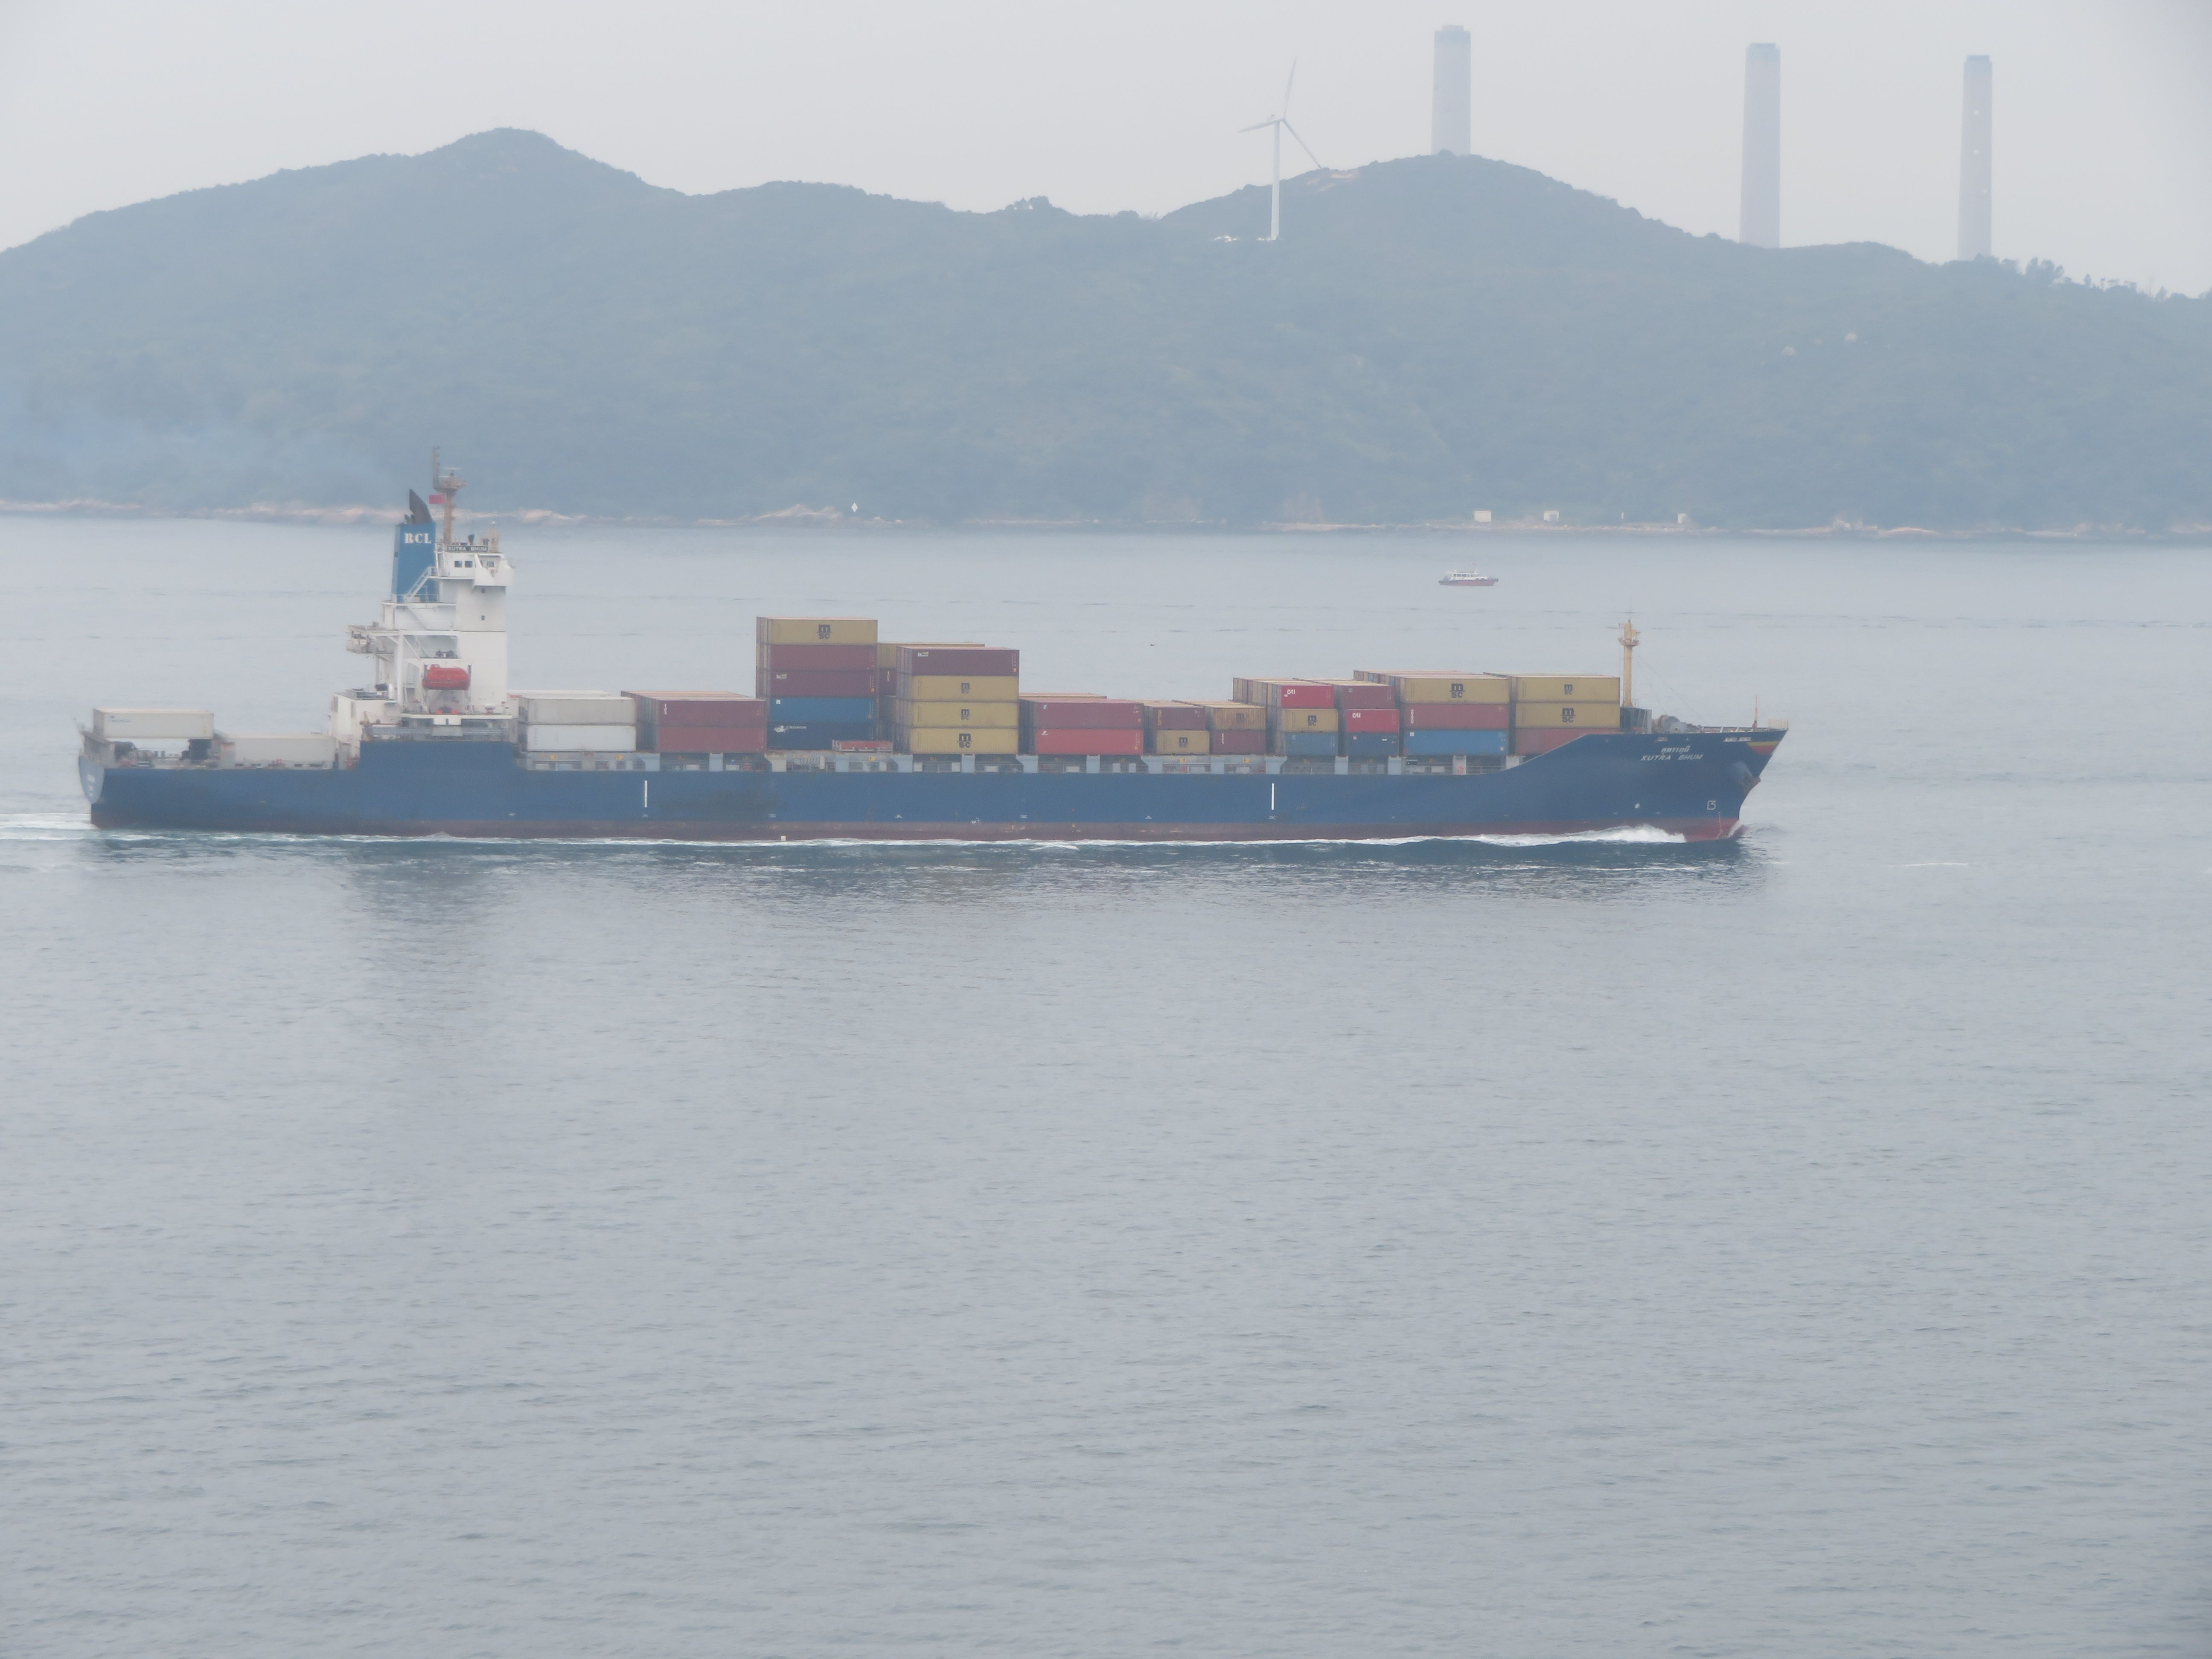 xurta bhum Type container ship Owner regional container line